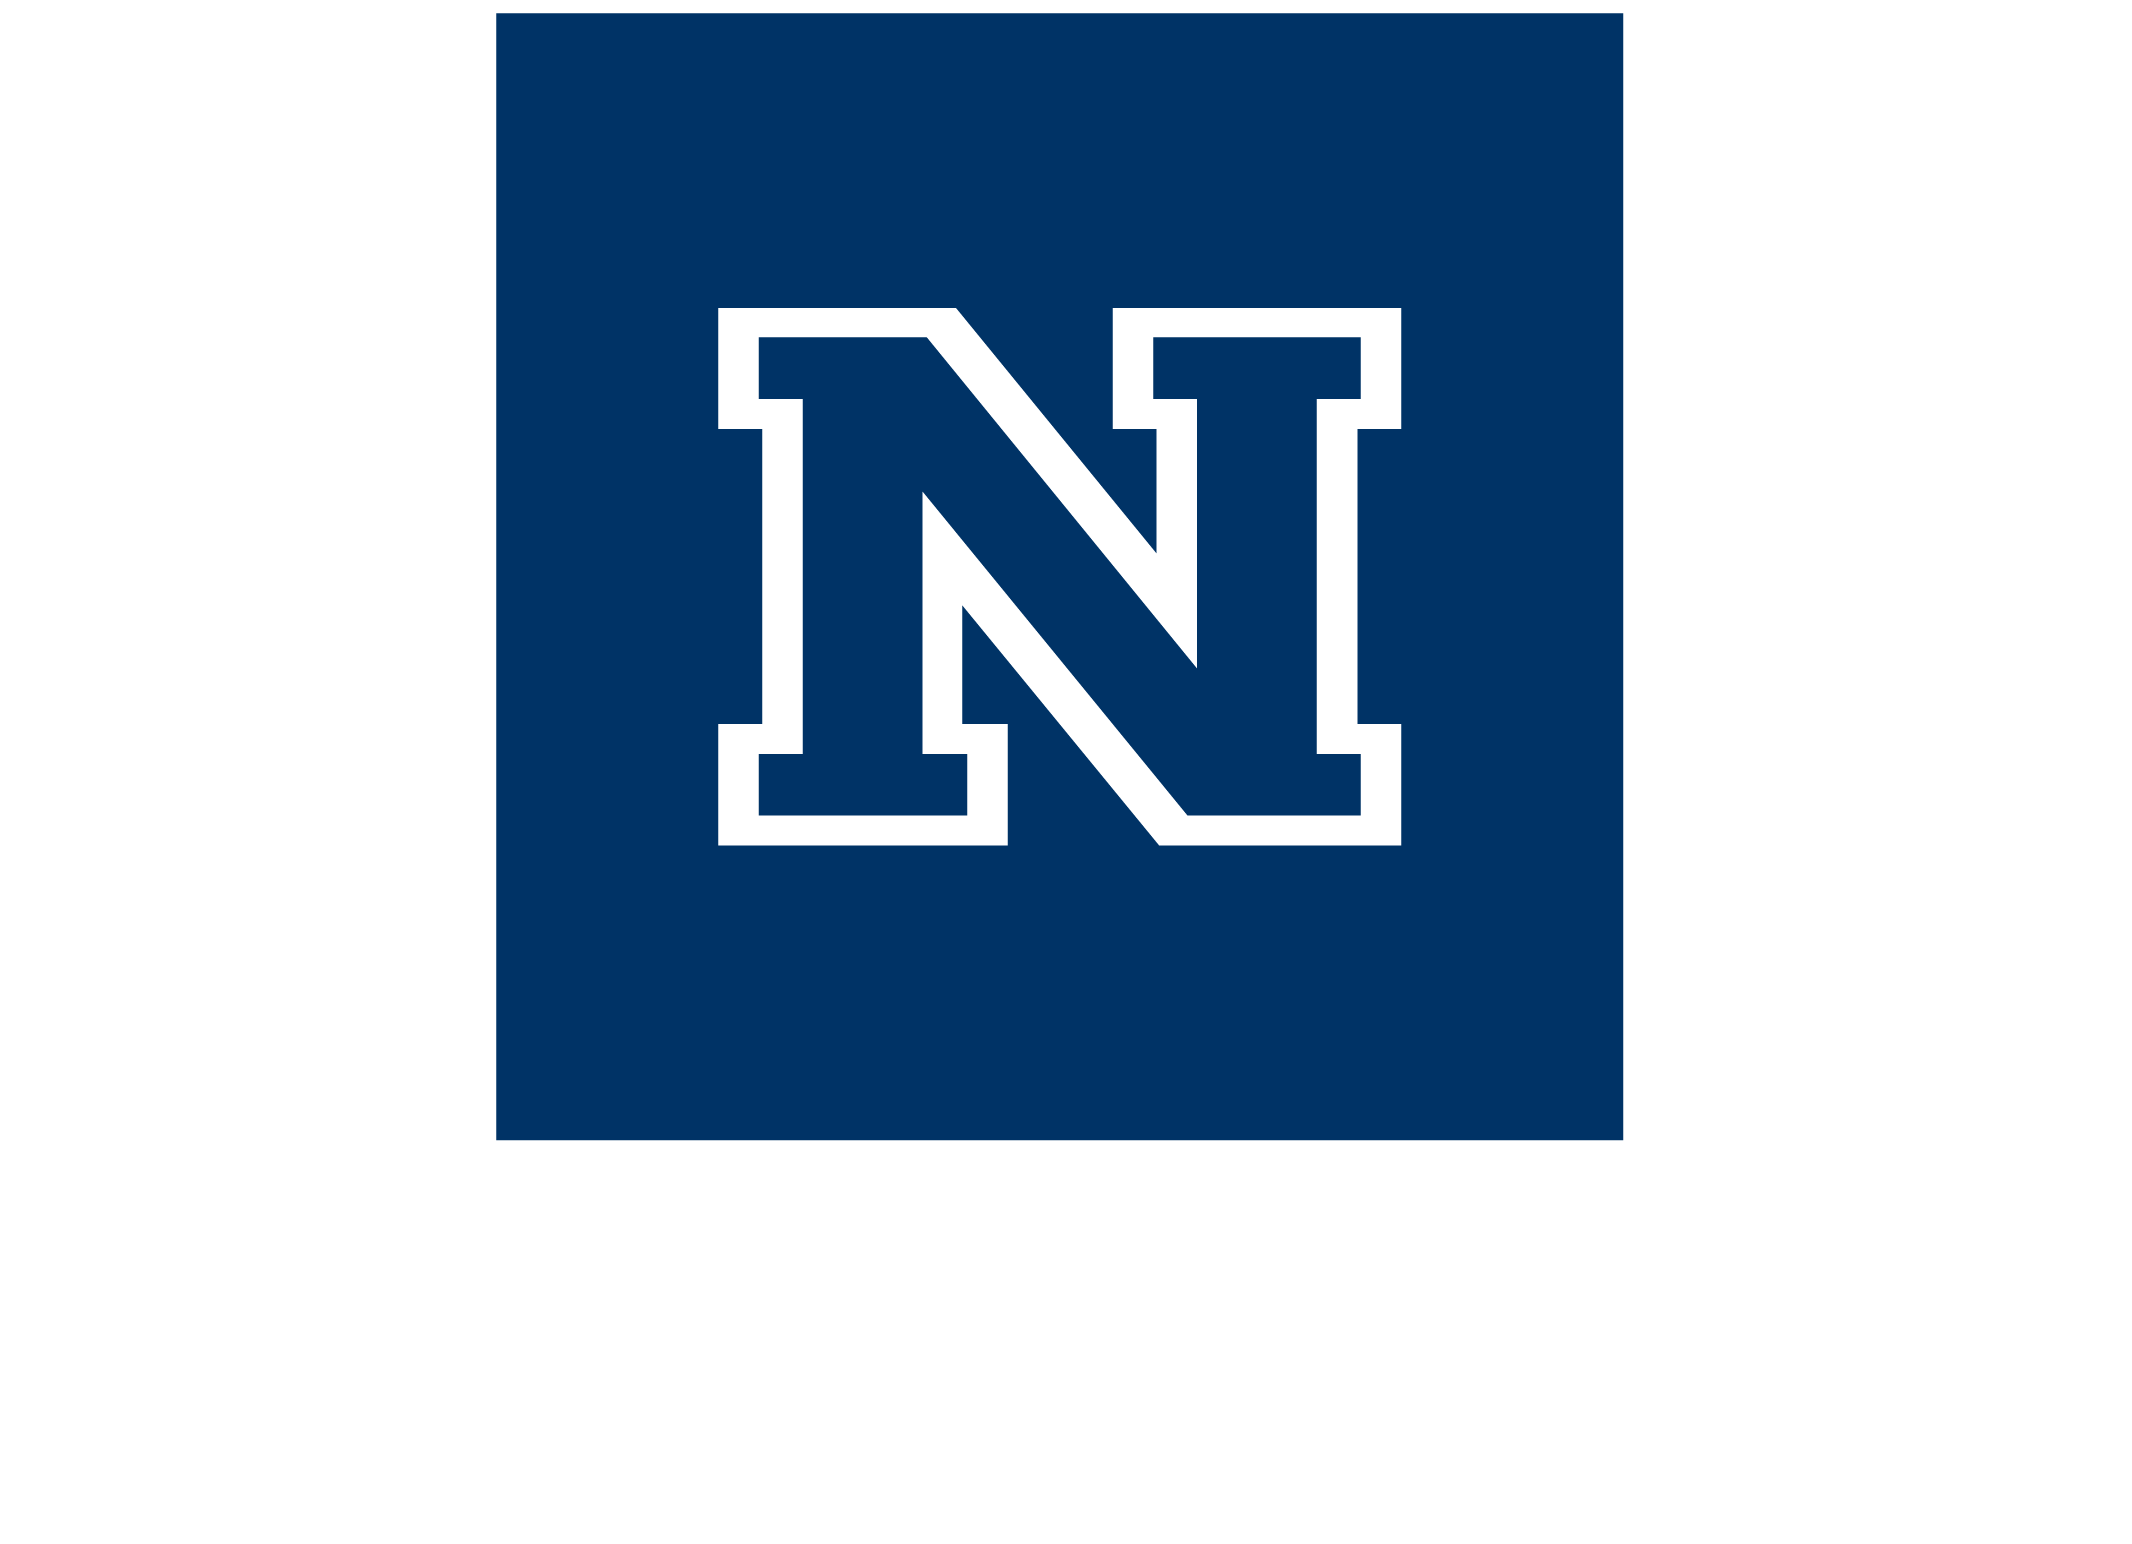 University of Nevada, Reno Scholarship programs